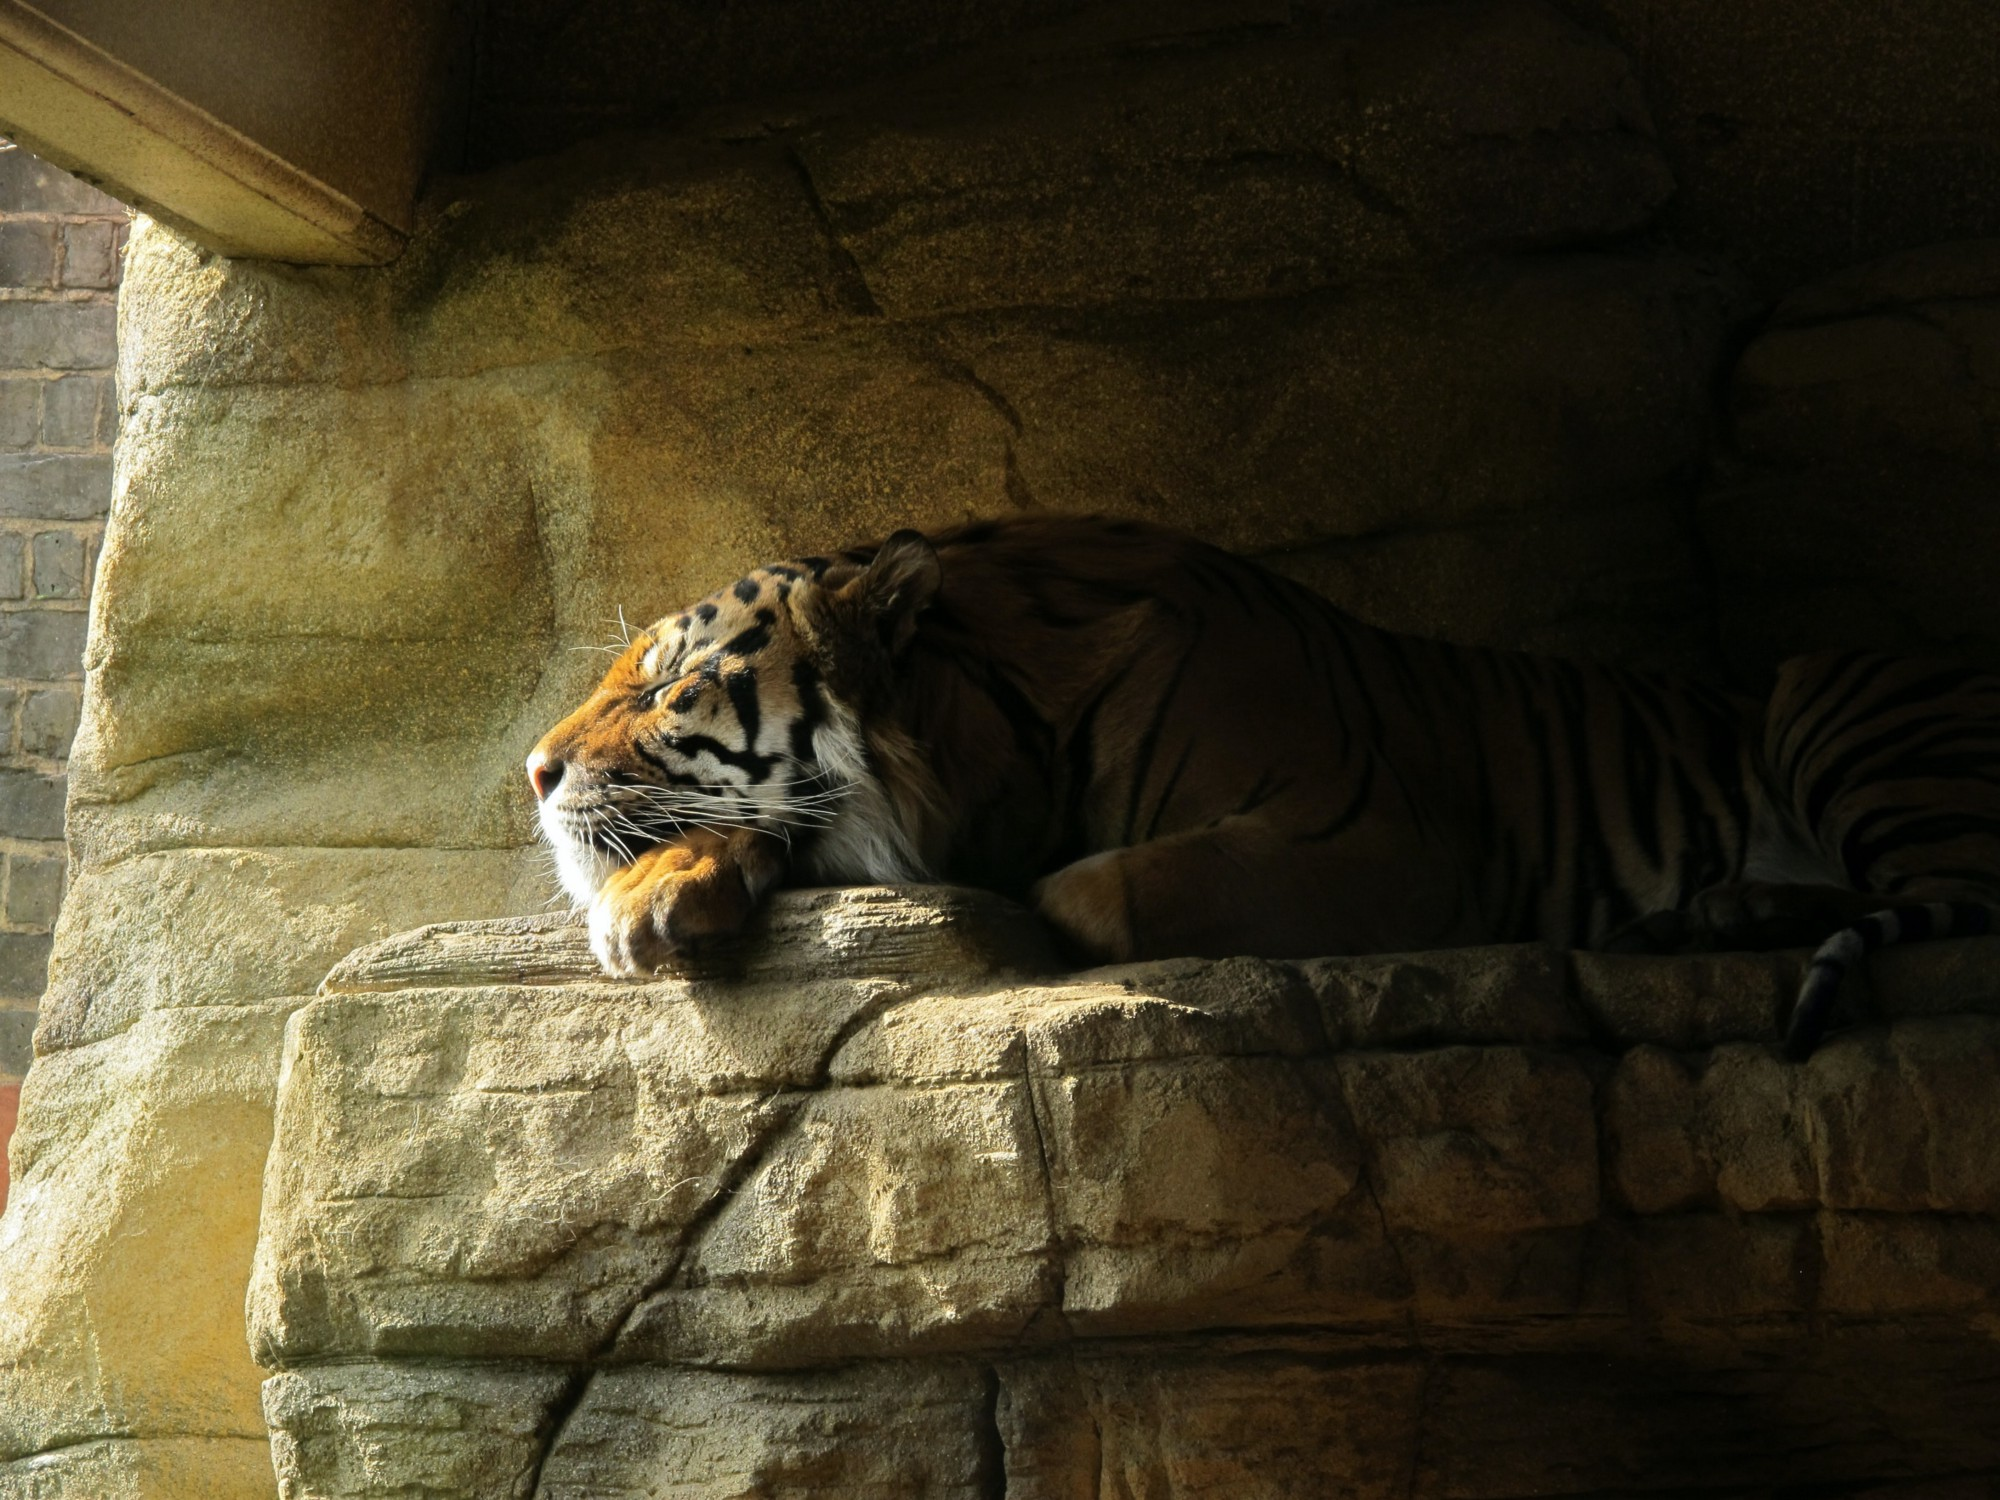 Tiger resting on a stone ledge